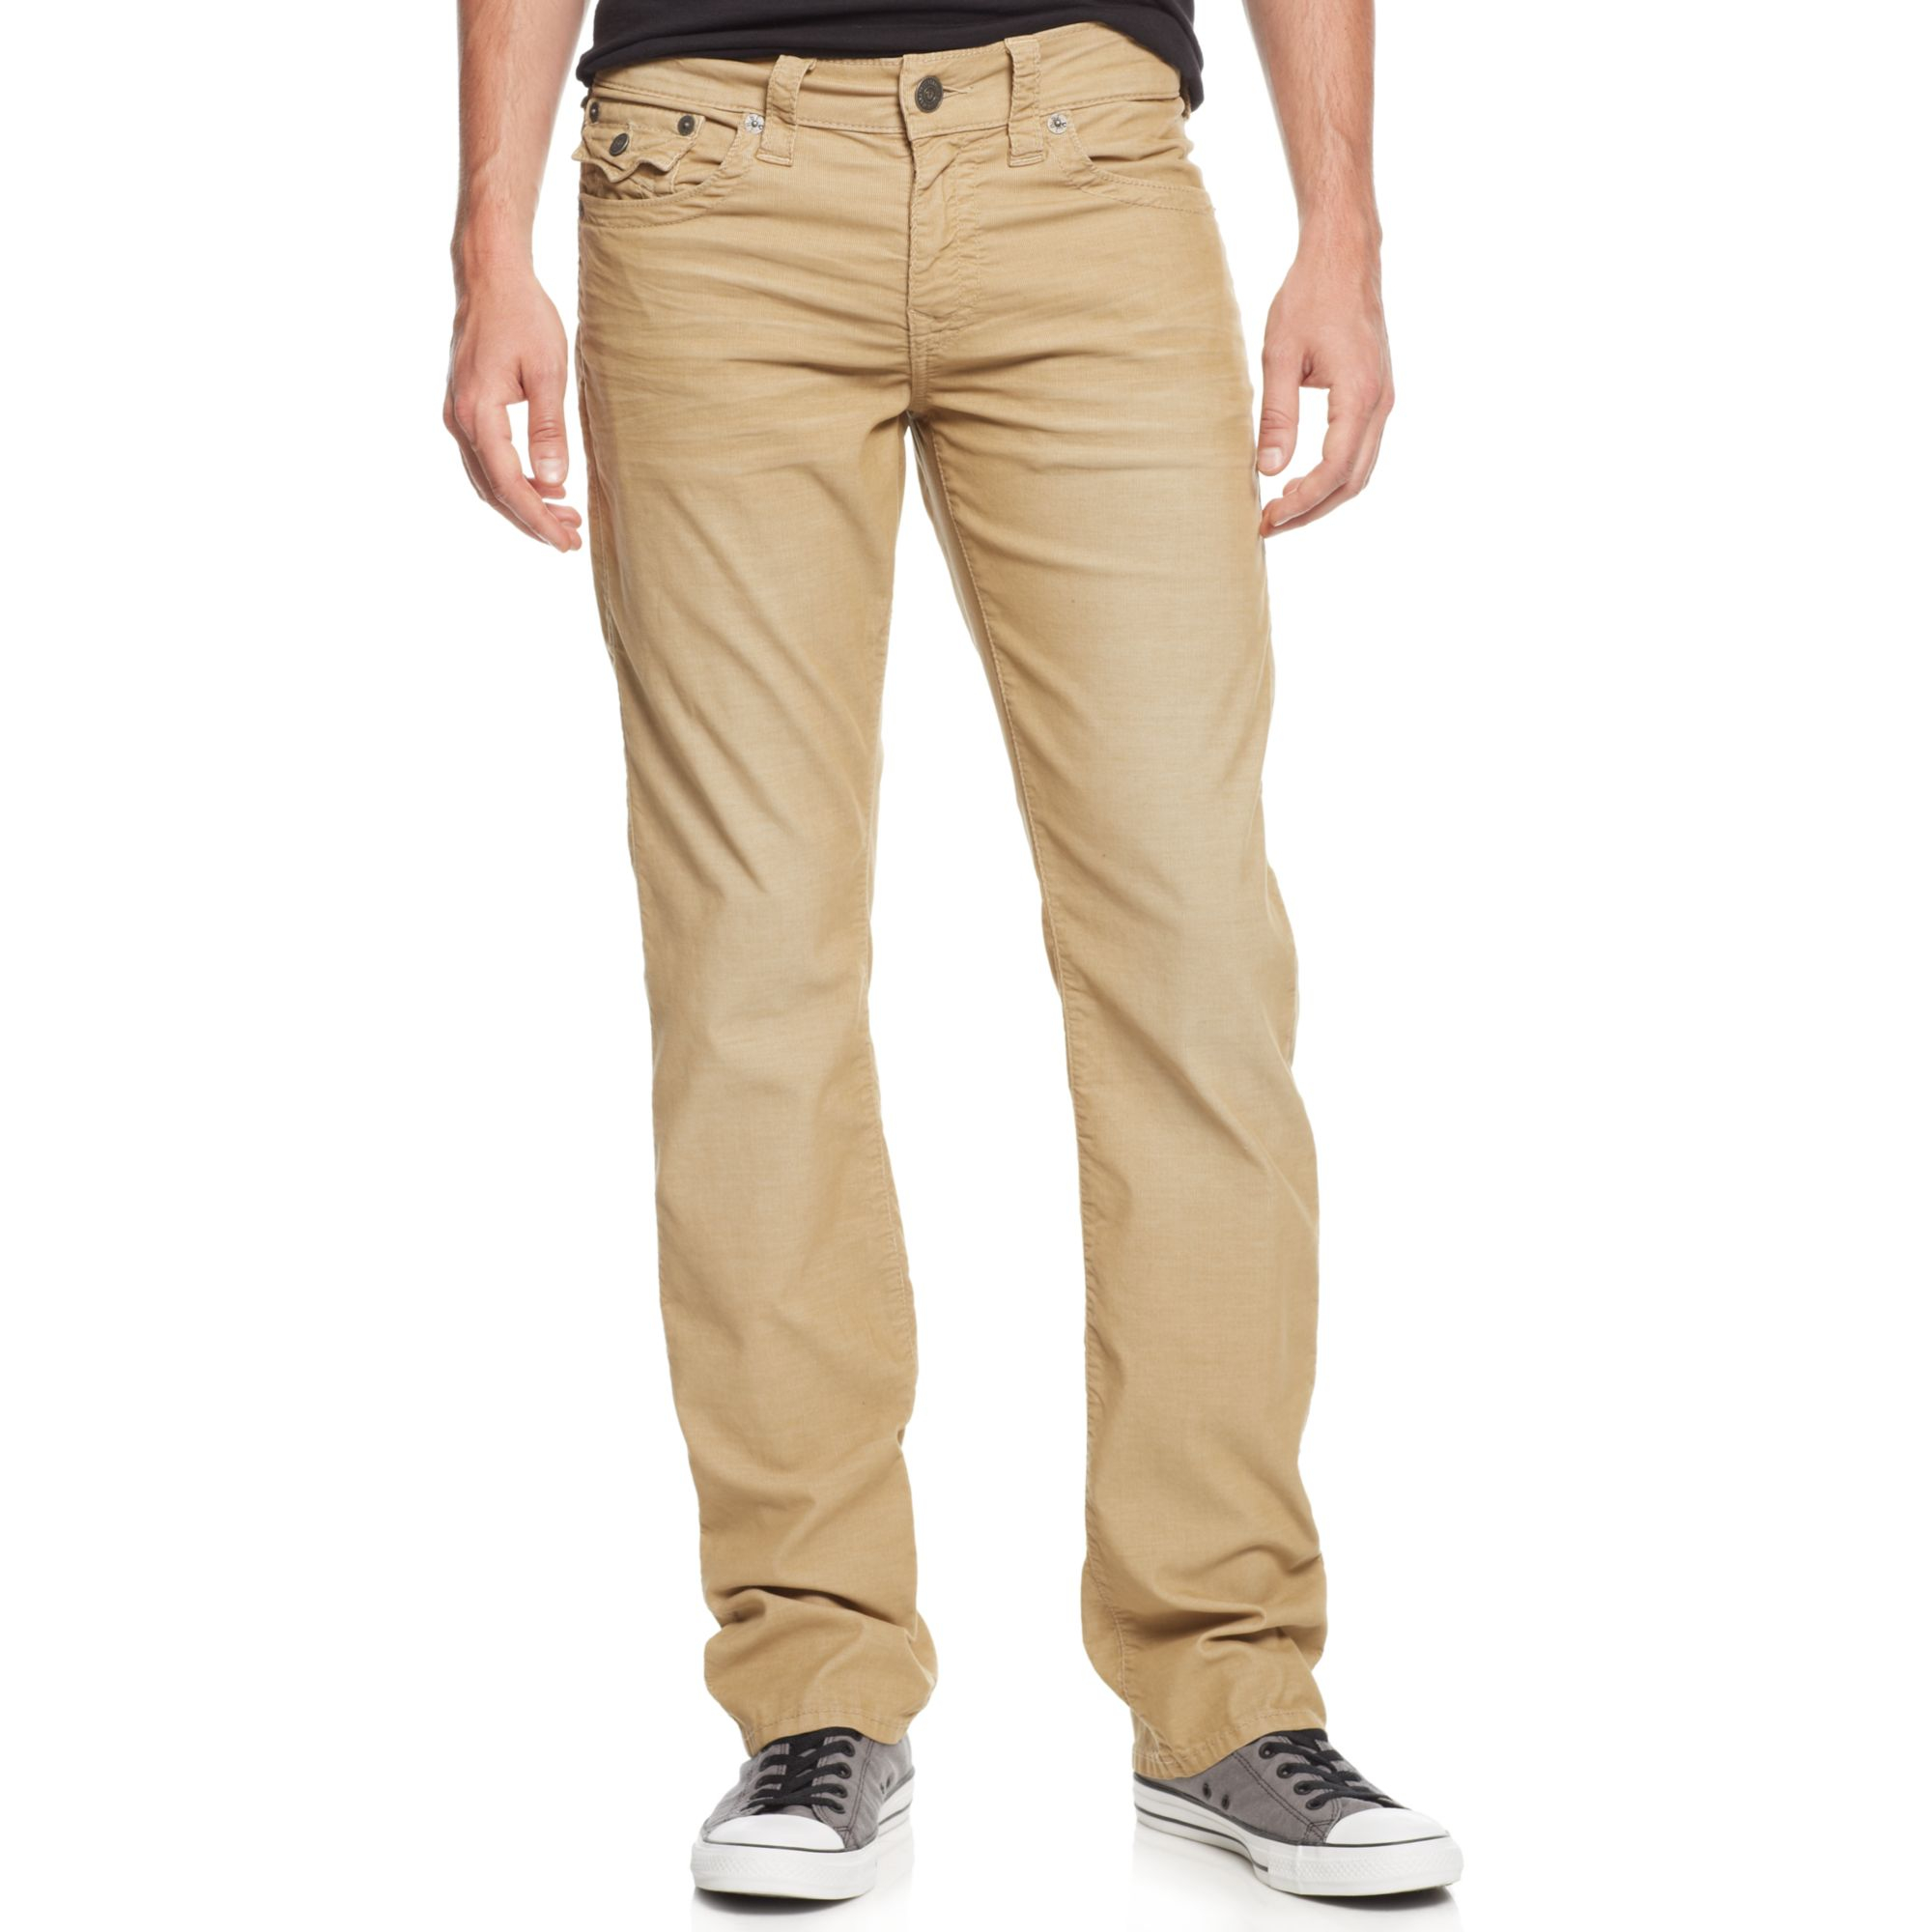 True religion Men's Ricky Relaxed Straight Fit Corduroy ...